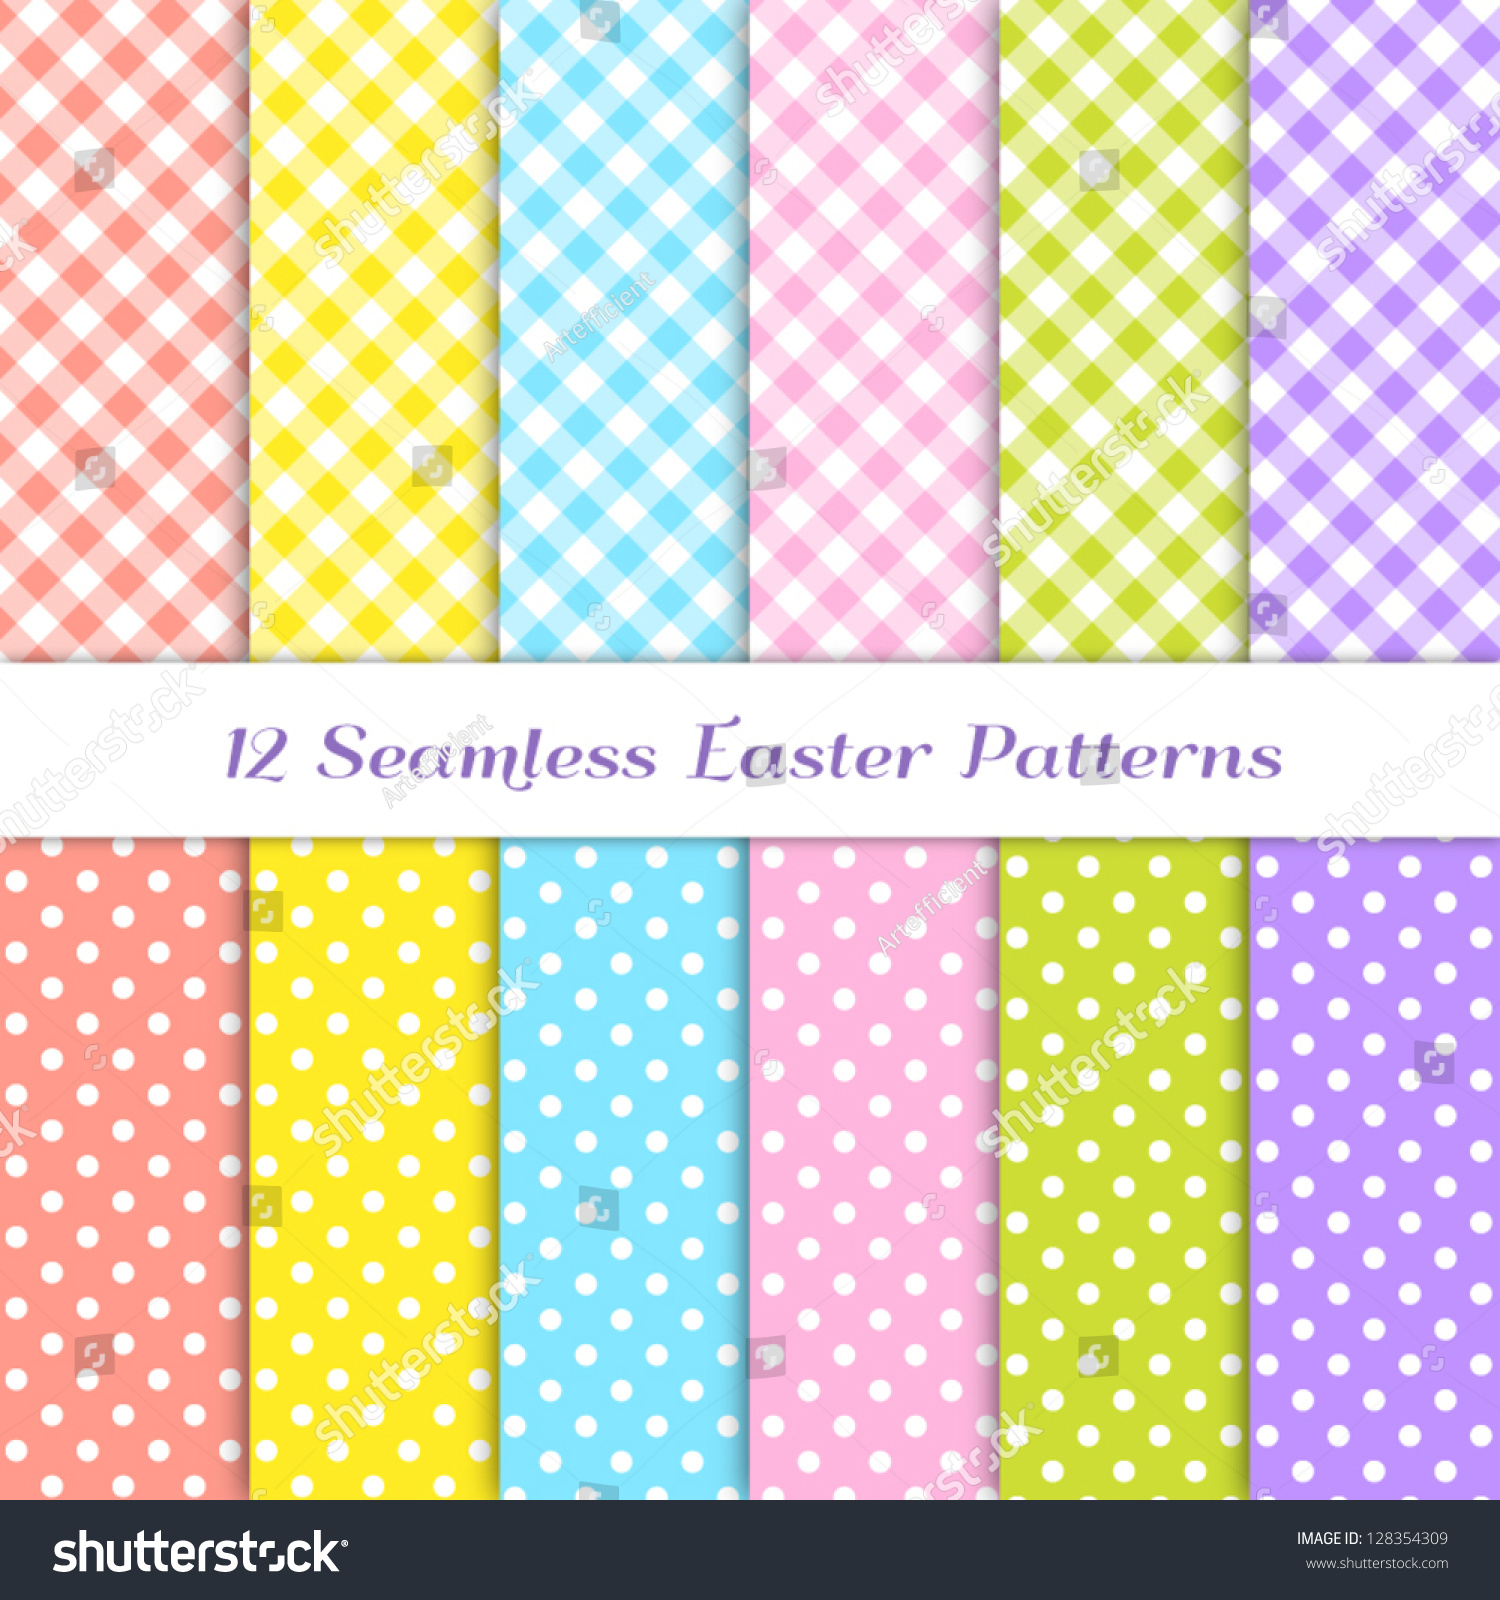 gingham polka dot patterns 6 easter stock vector 128354309